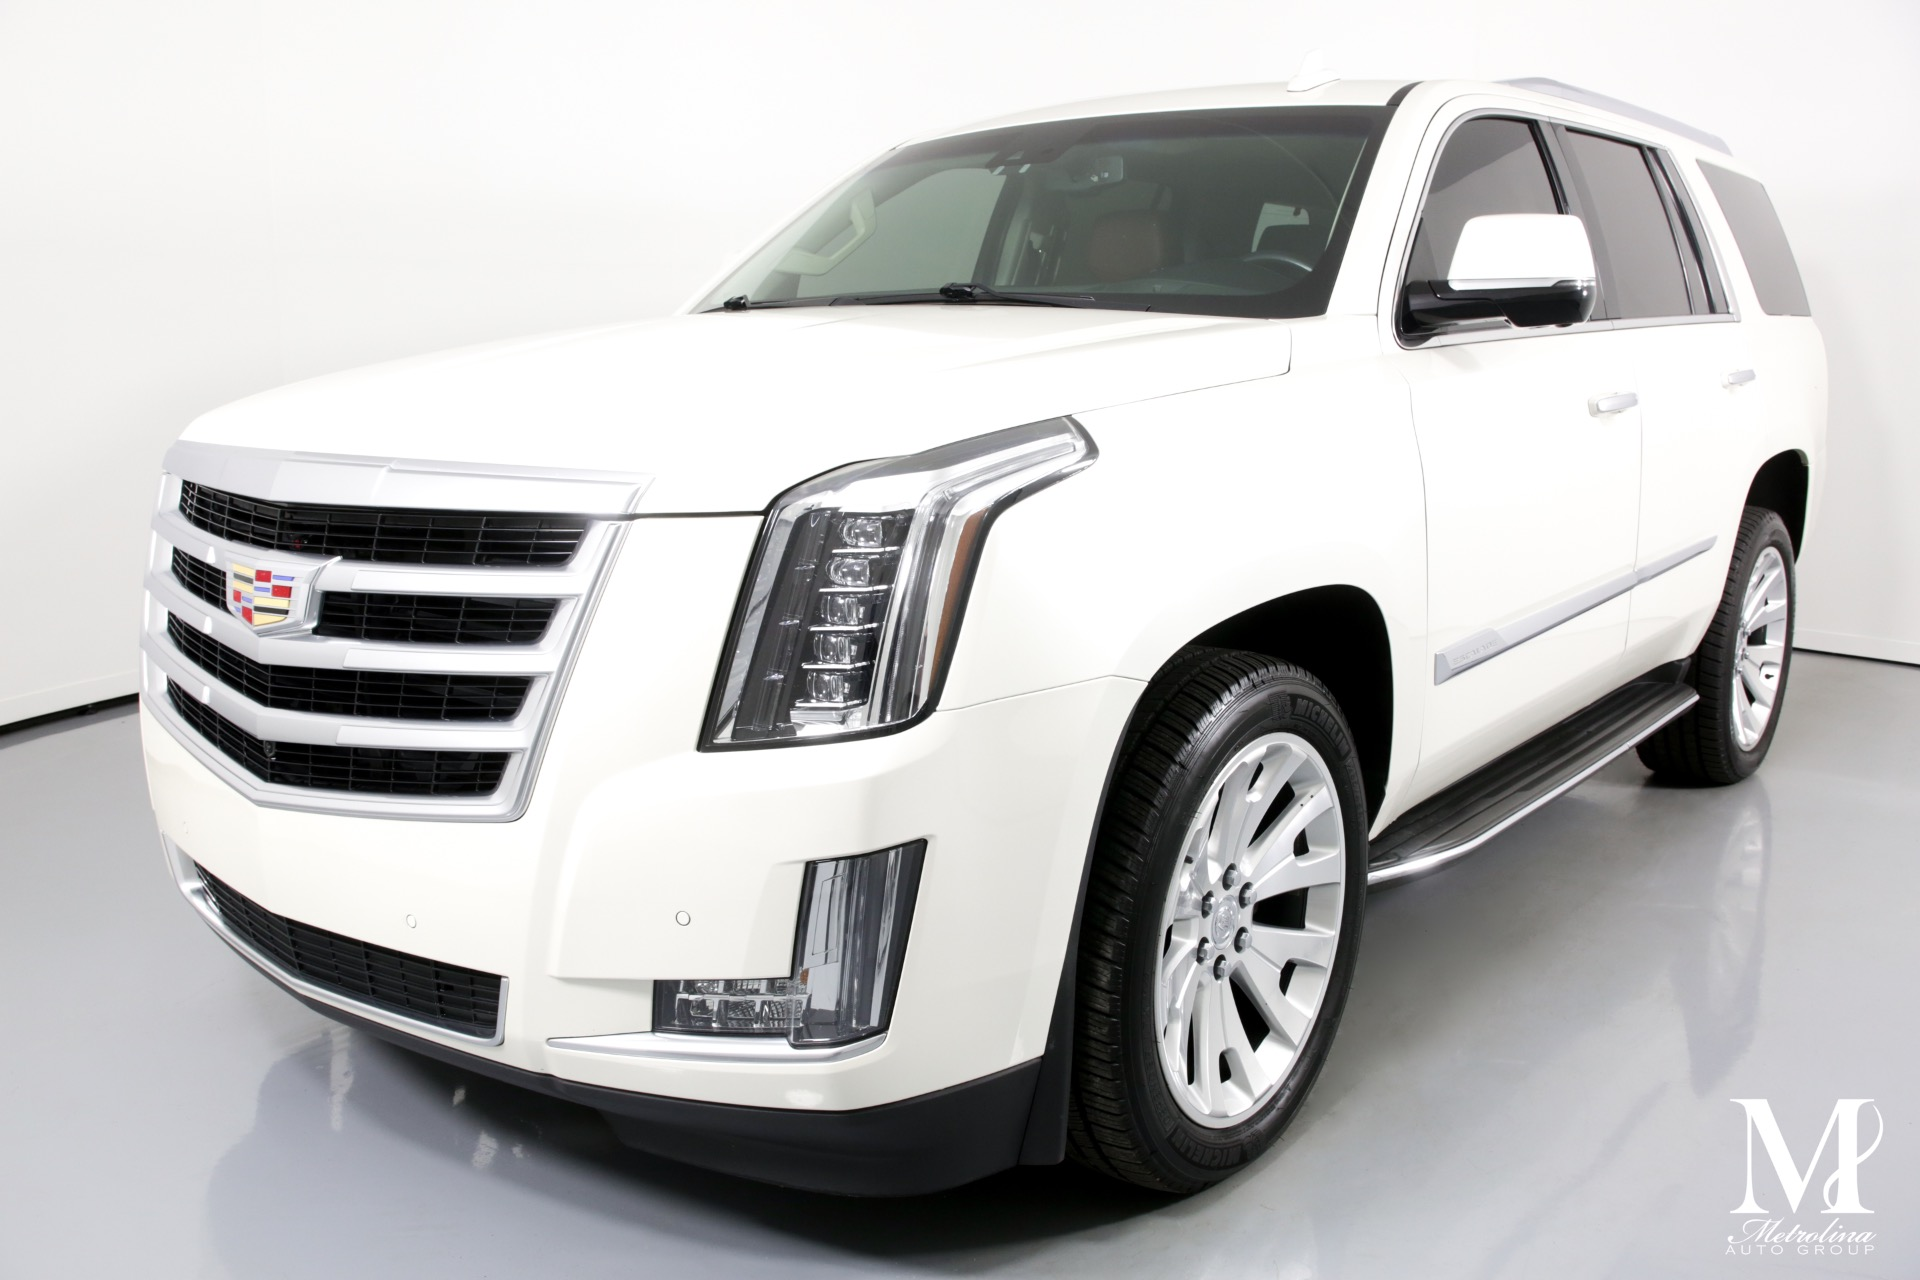 Used 2015 Cadillac Escalade Luxury for sale $49,996 at Metrolina Auto Group in Charlotte NC 28217 - 4